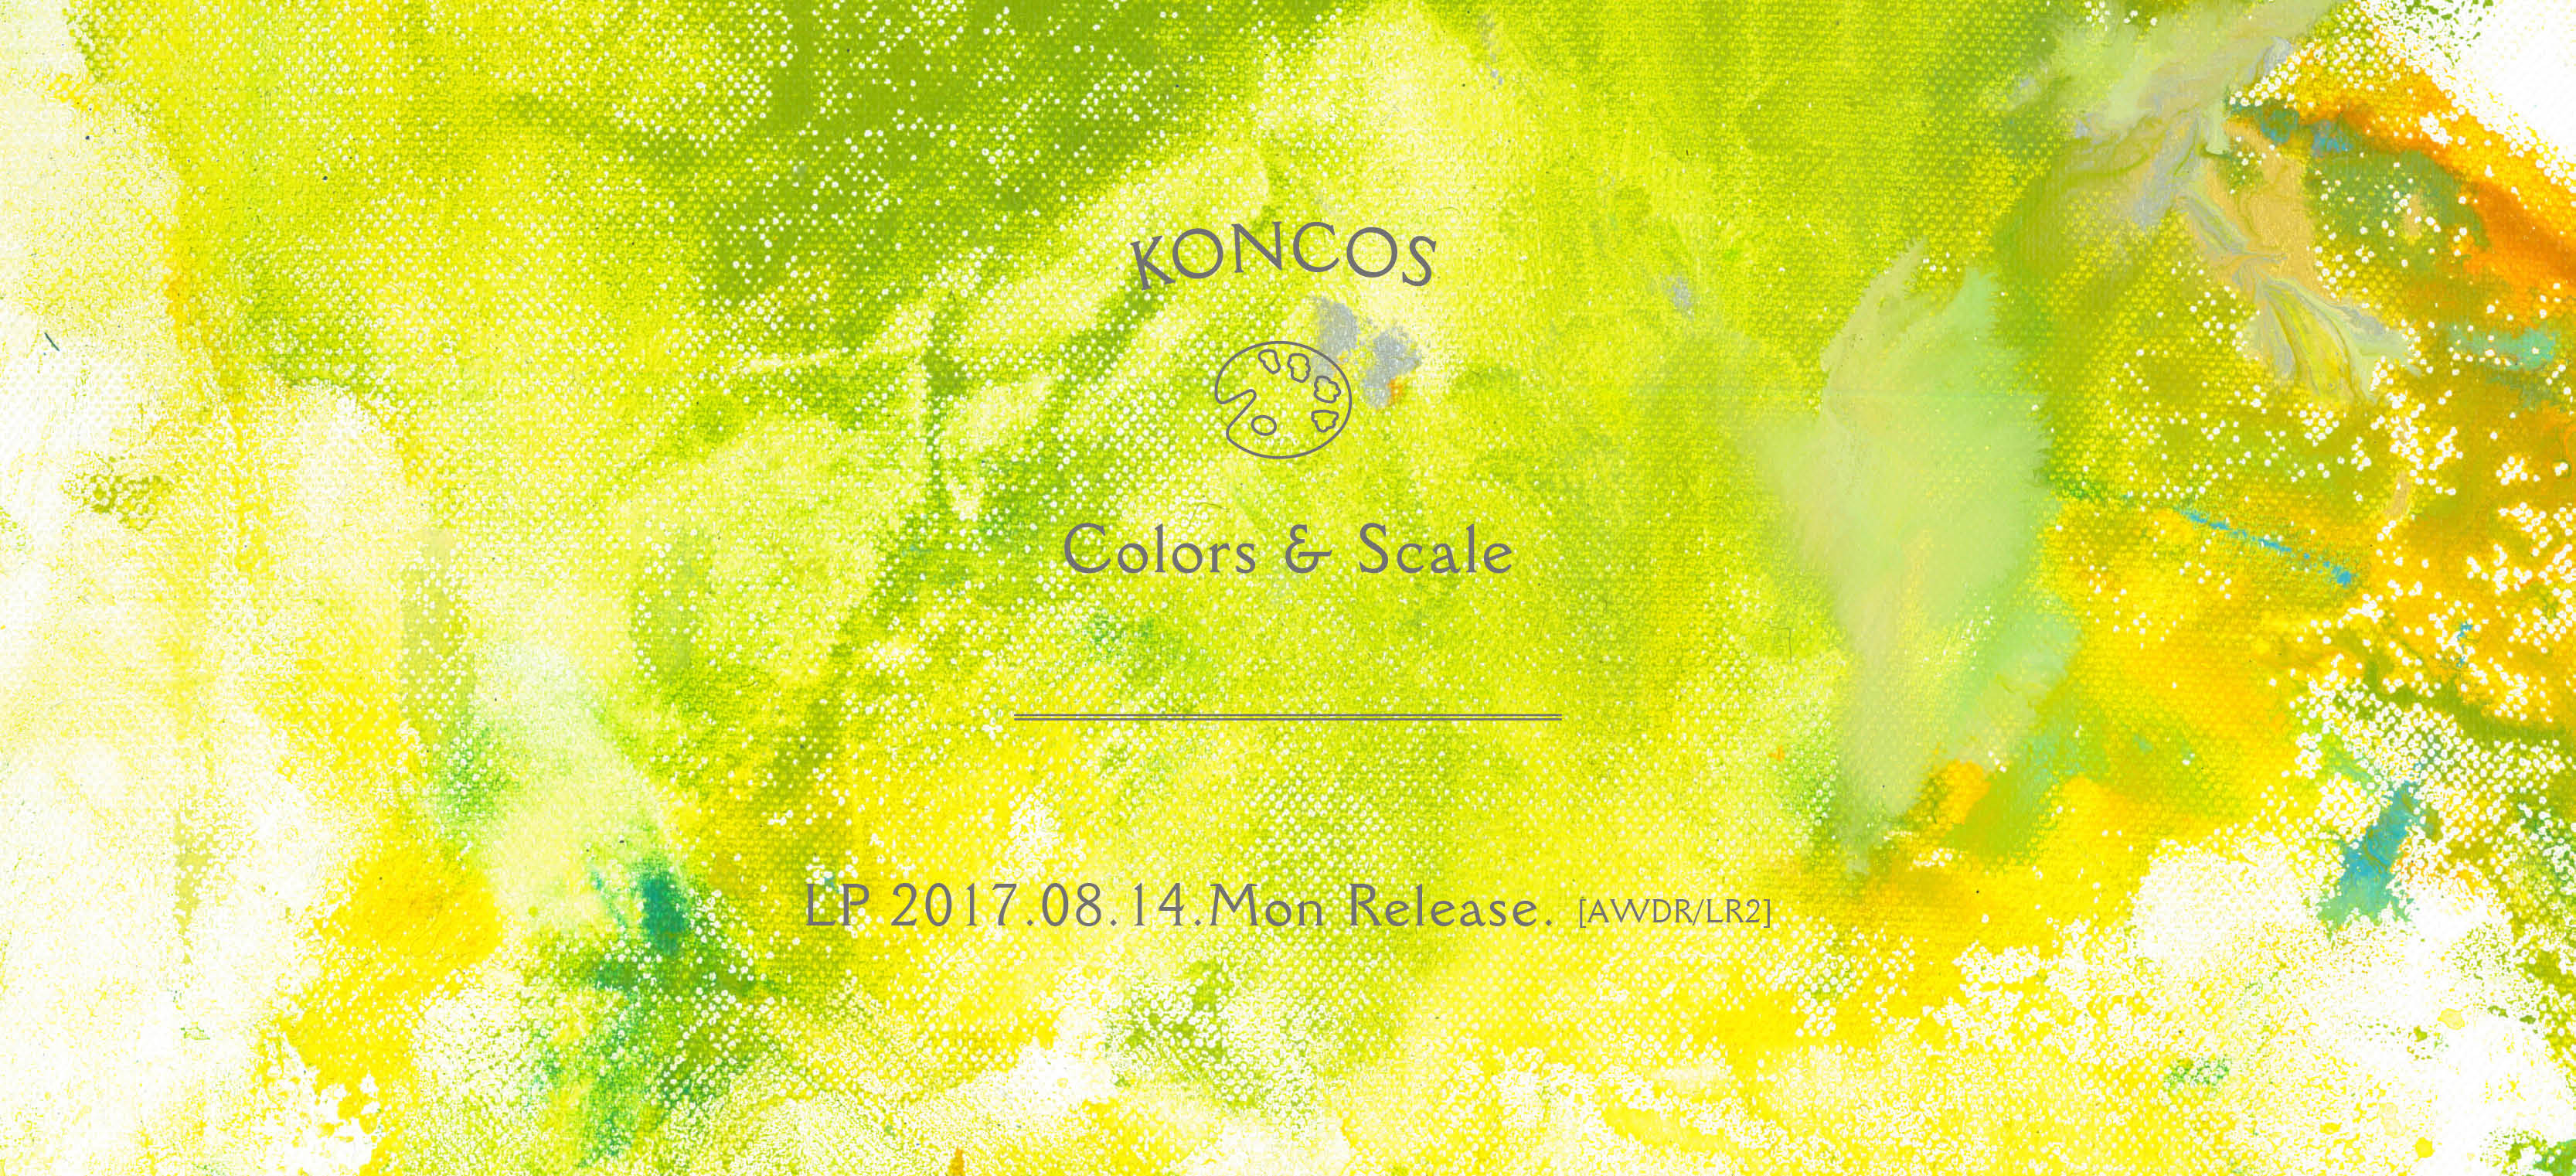 KONCOS / Colors & Scale LP!!!